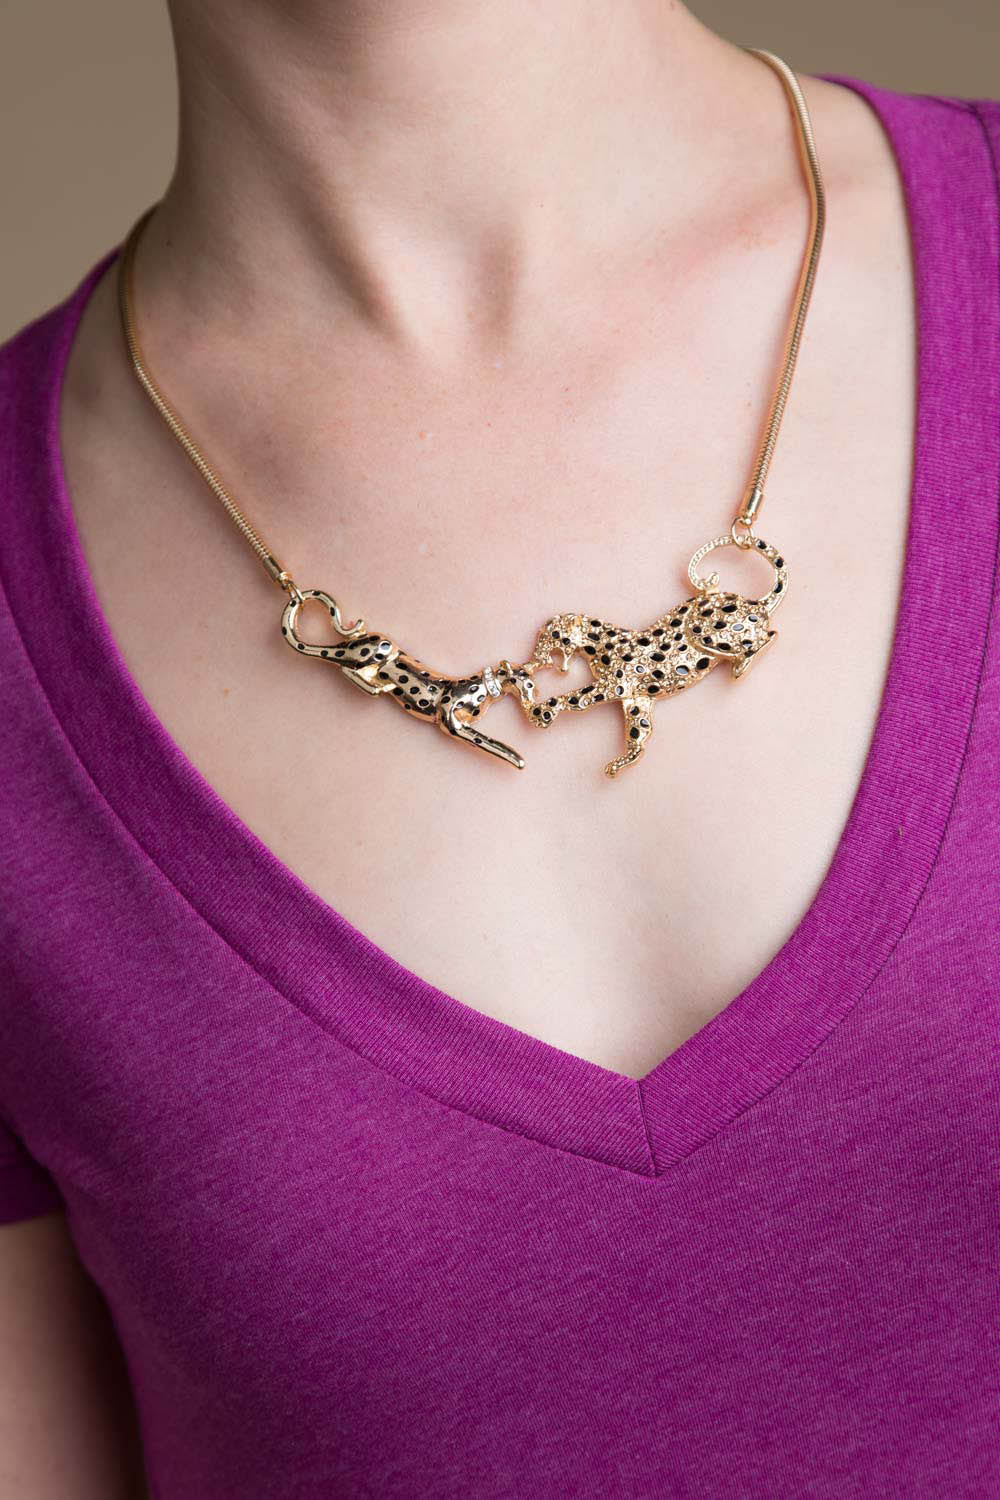 Type 3 Purfect Necklace